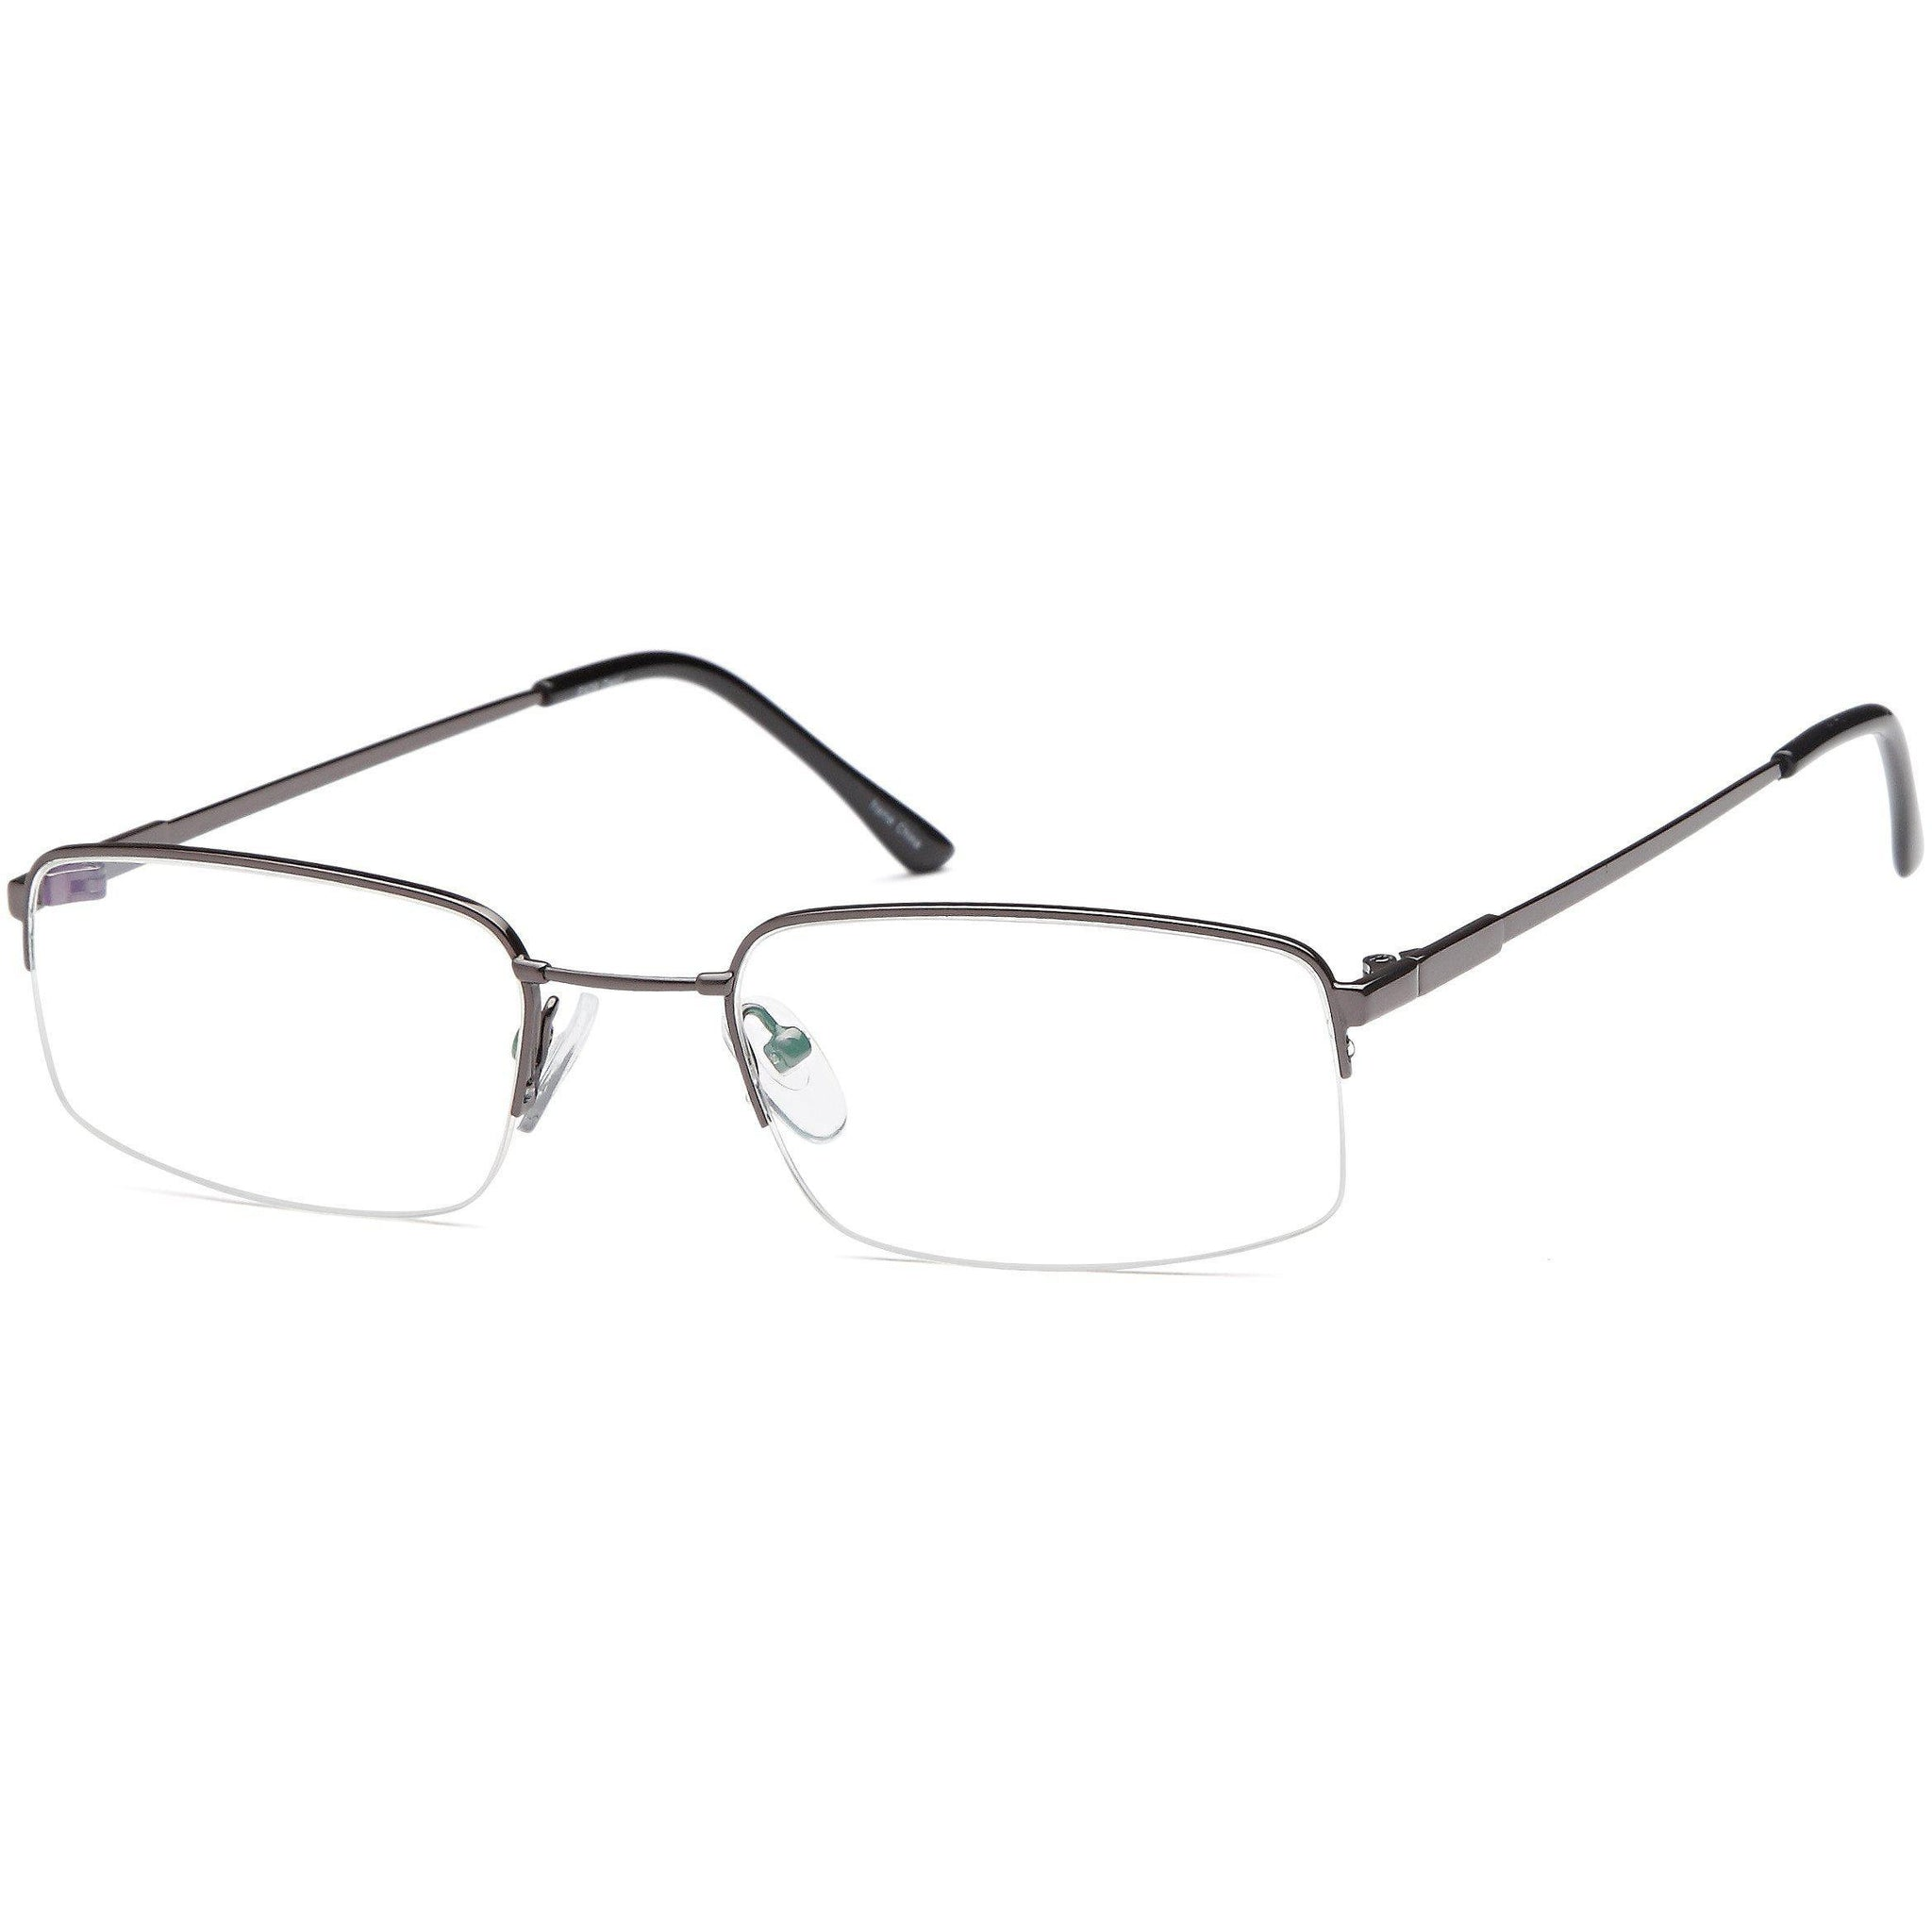 Titanium Prescription Glasses FX 29 Eyeglasses Frame